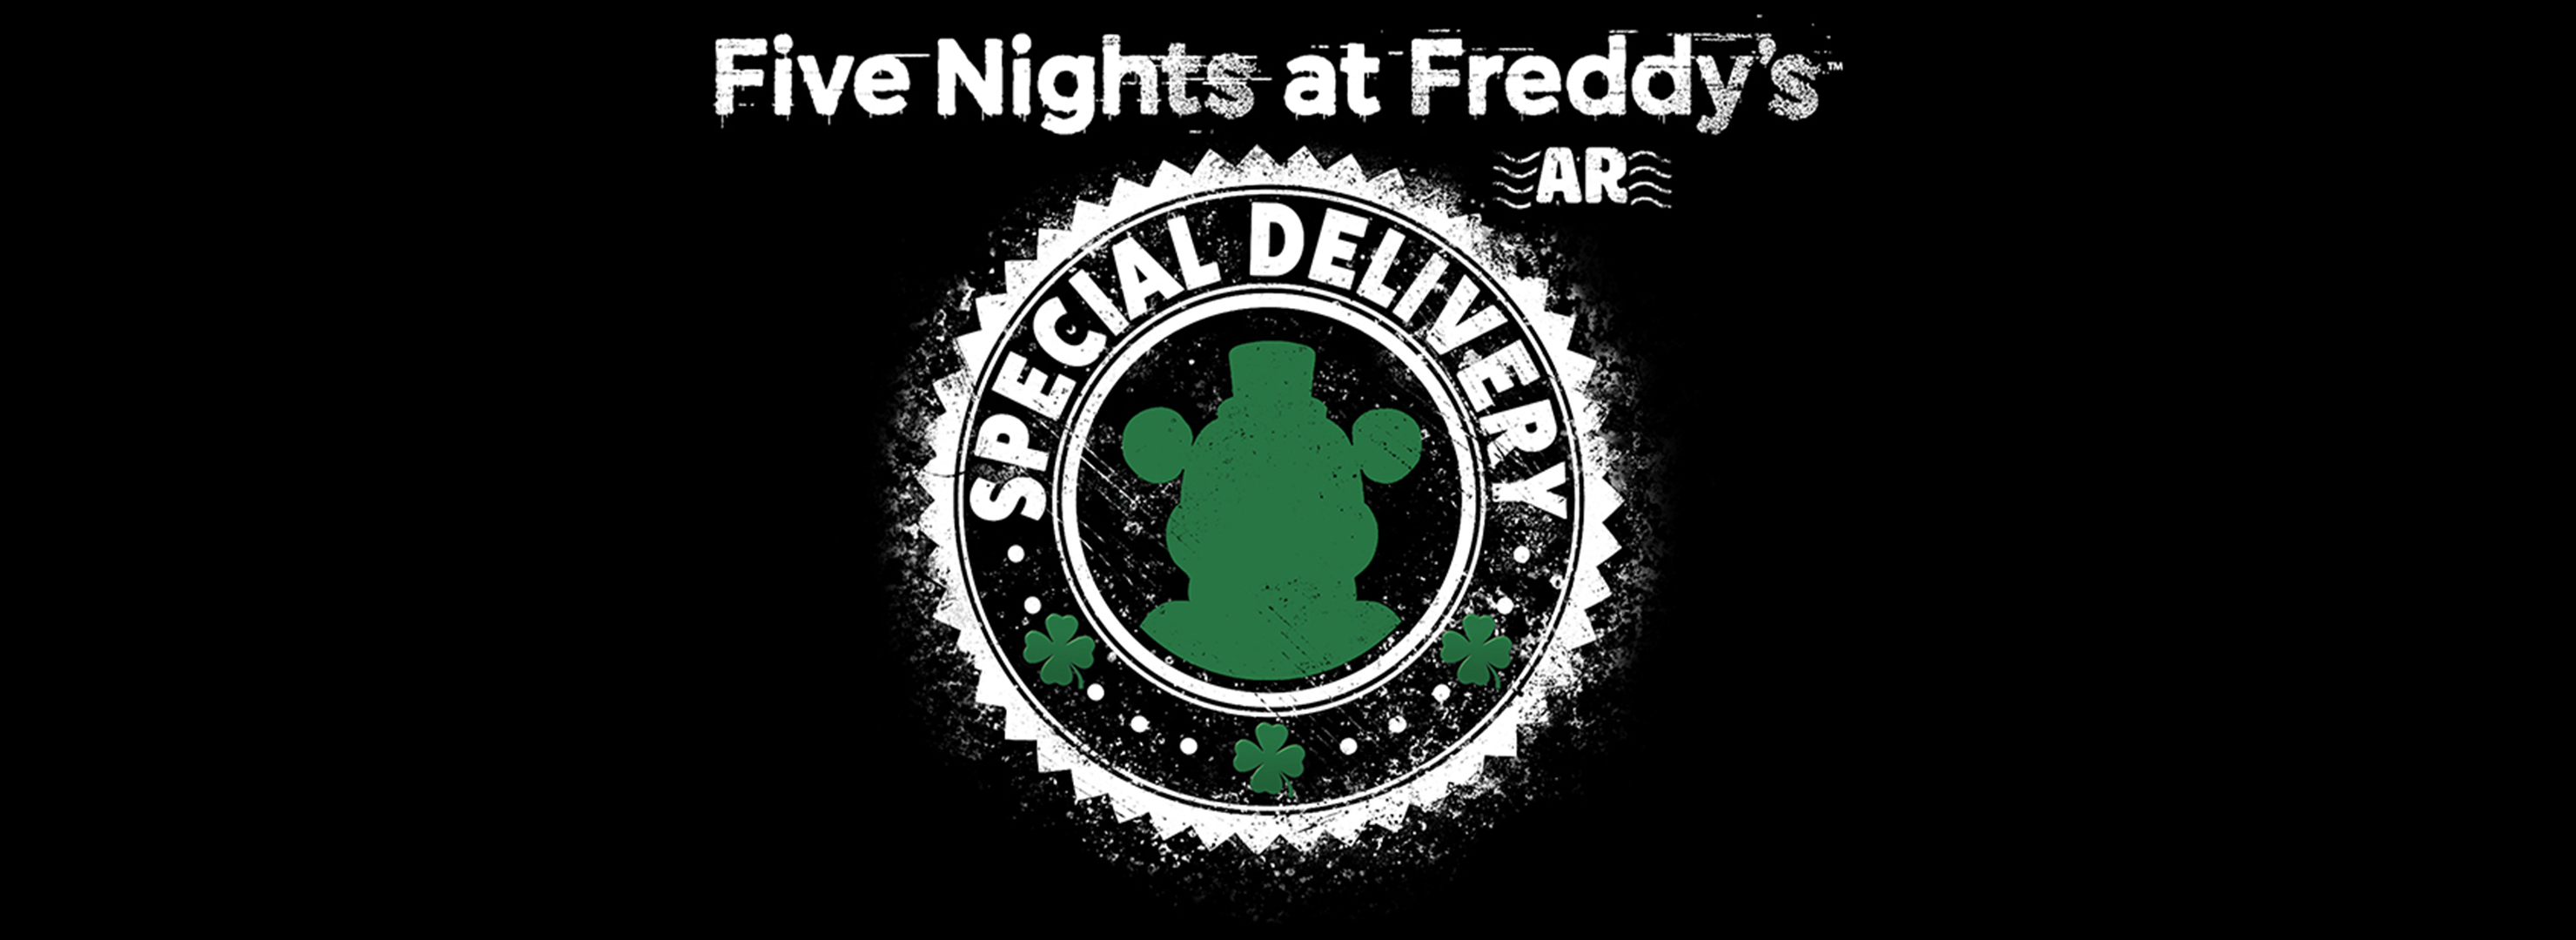 [2020.03.12] A New Feature has been Delivered Today in FNAF AR: Special Delivery